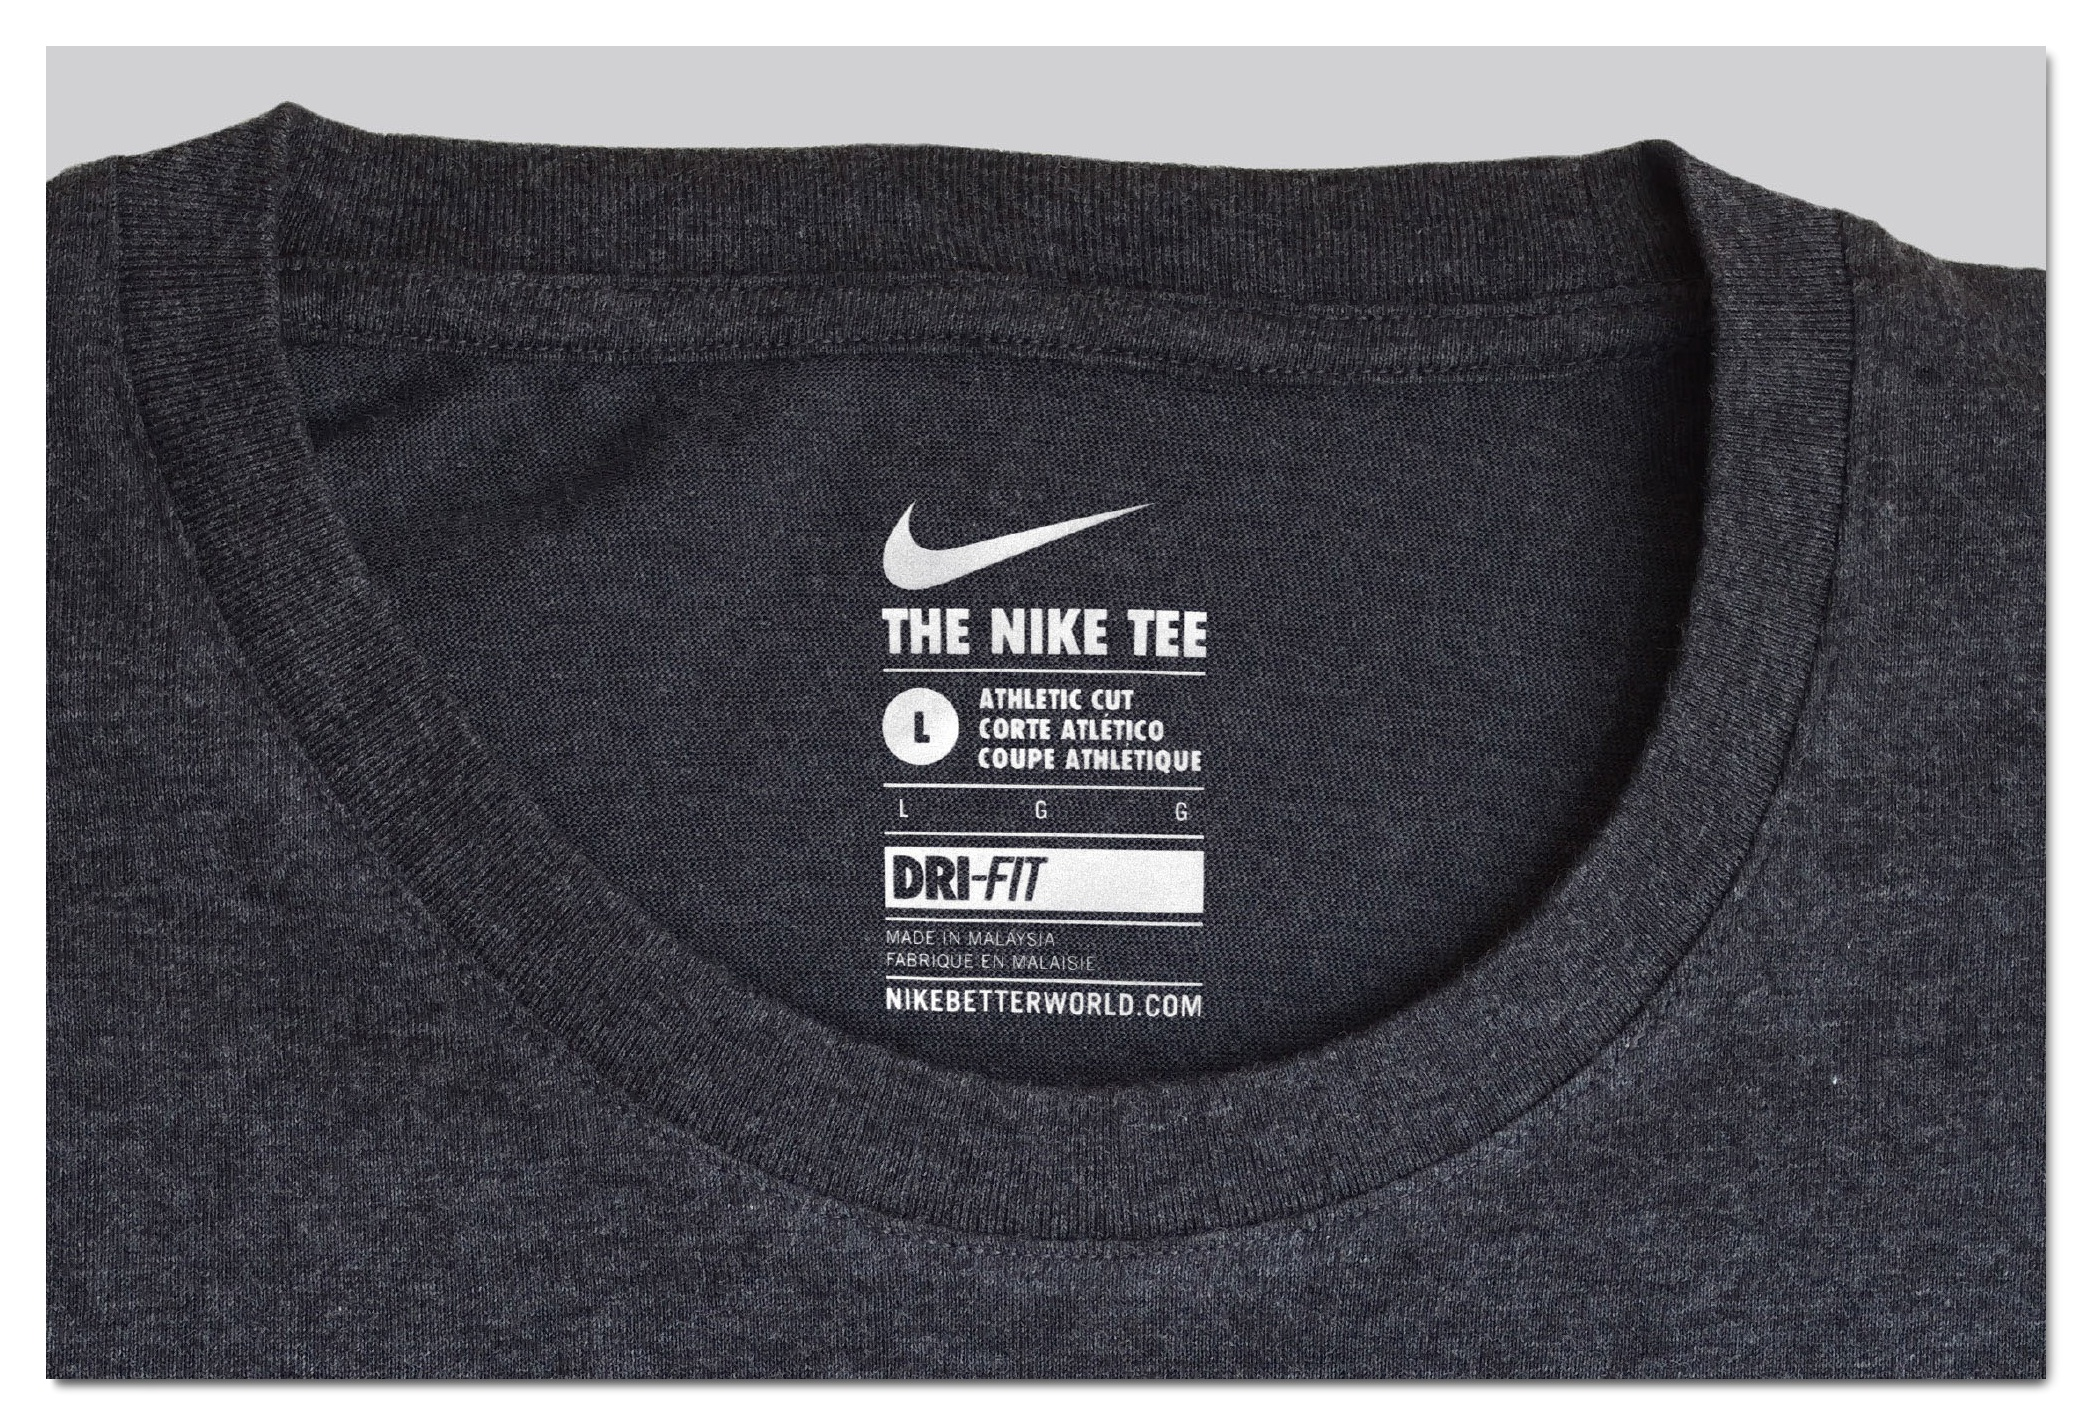 inside-label-example-nike-tshirt